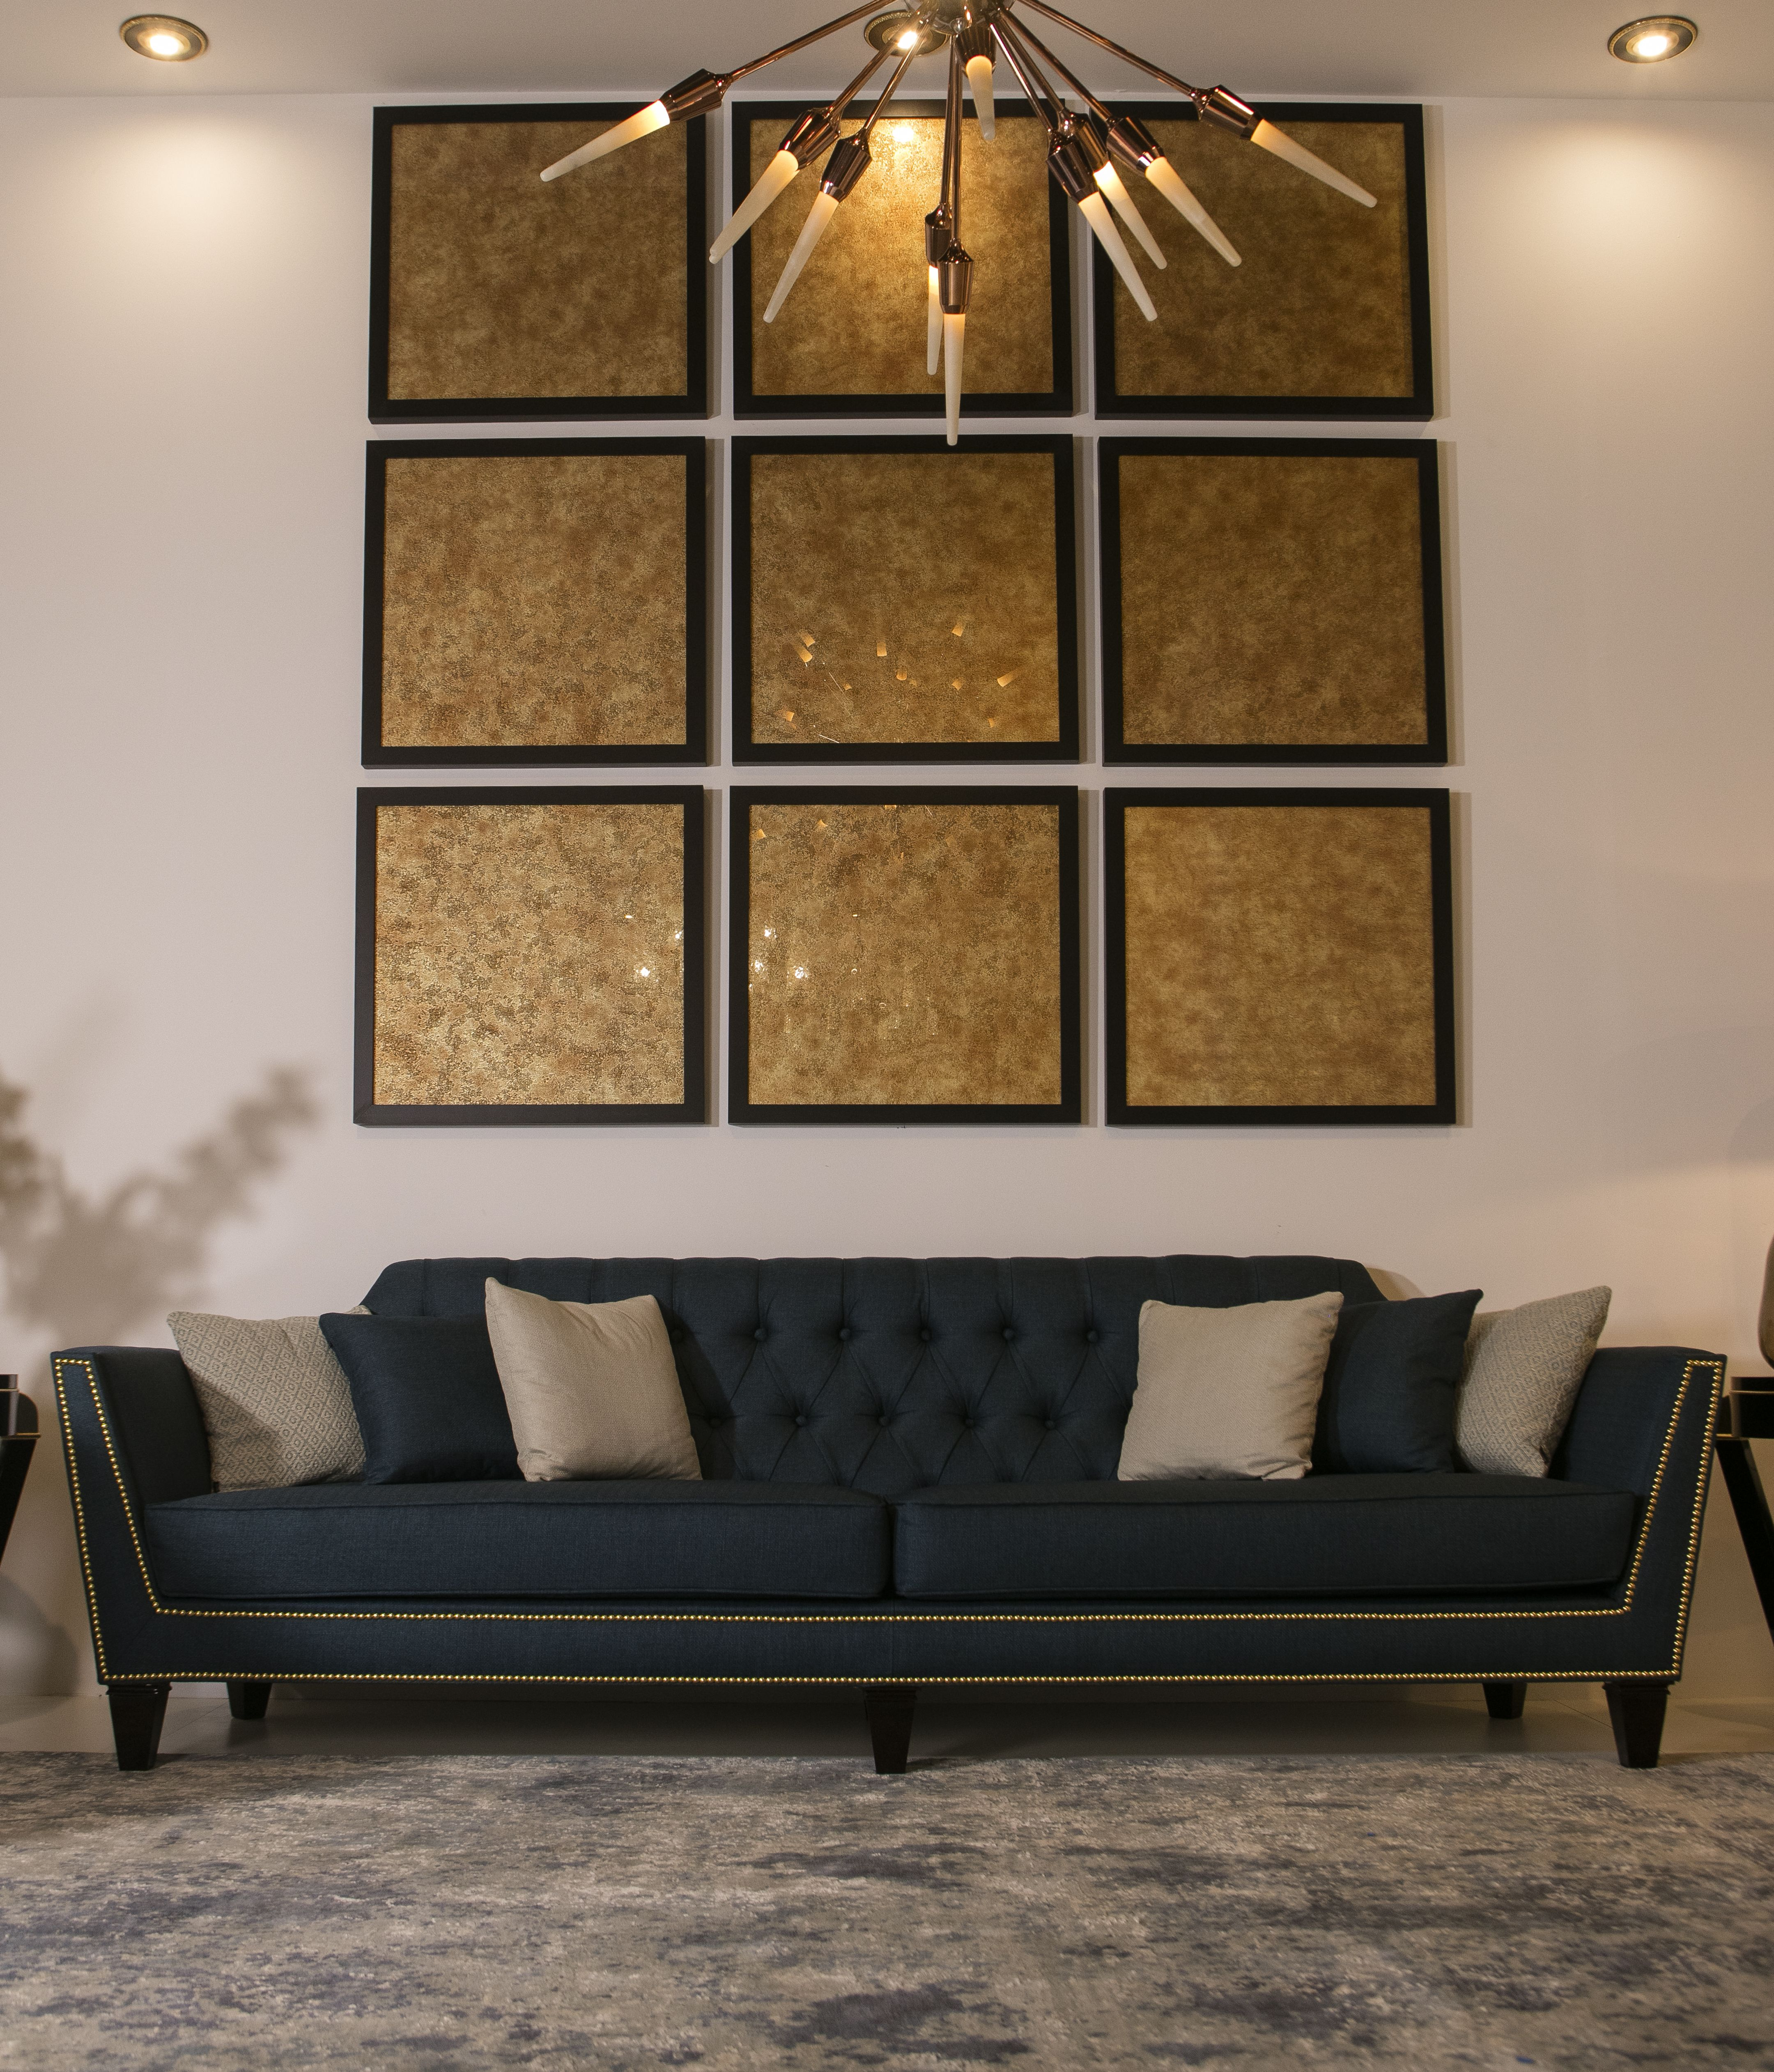 living room bel air collection by mariner luxury furniture luxury modern furniture air collection